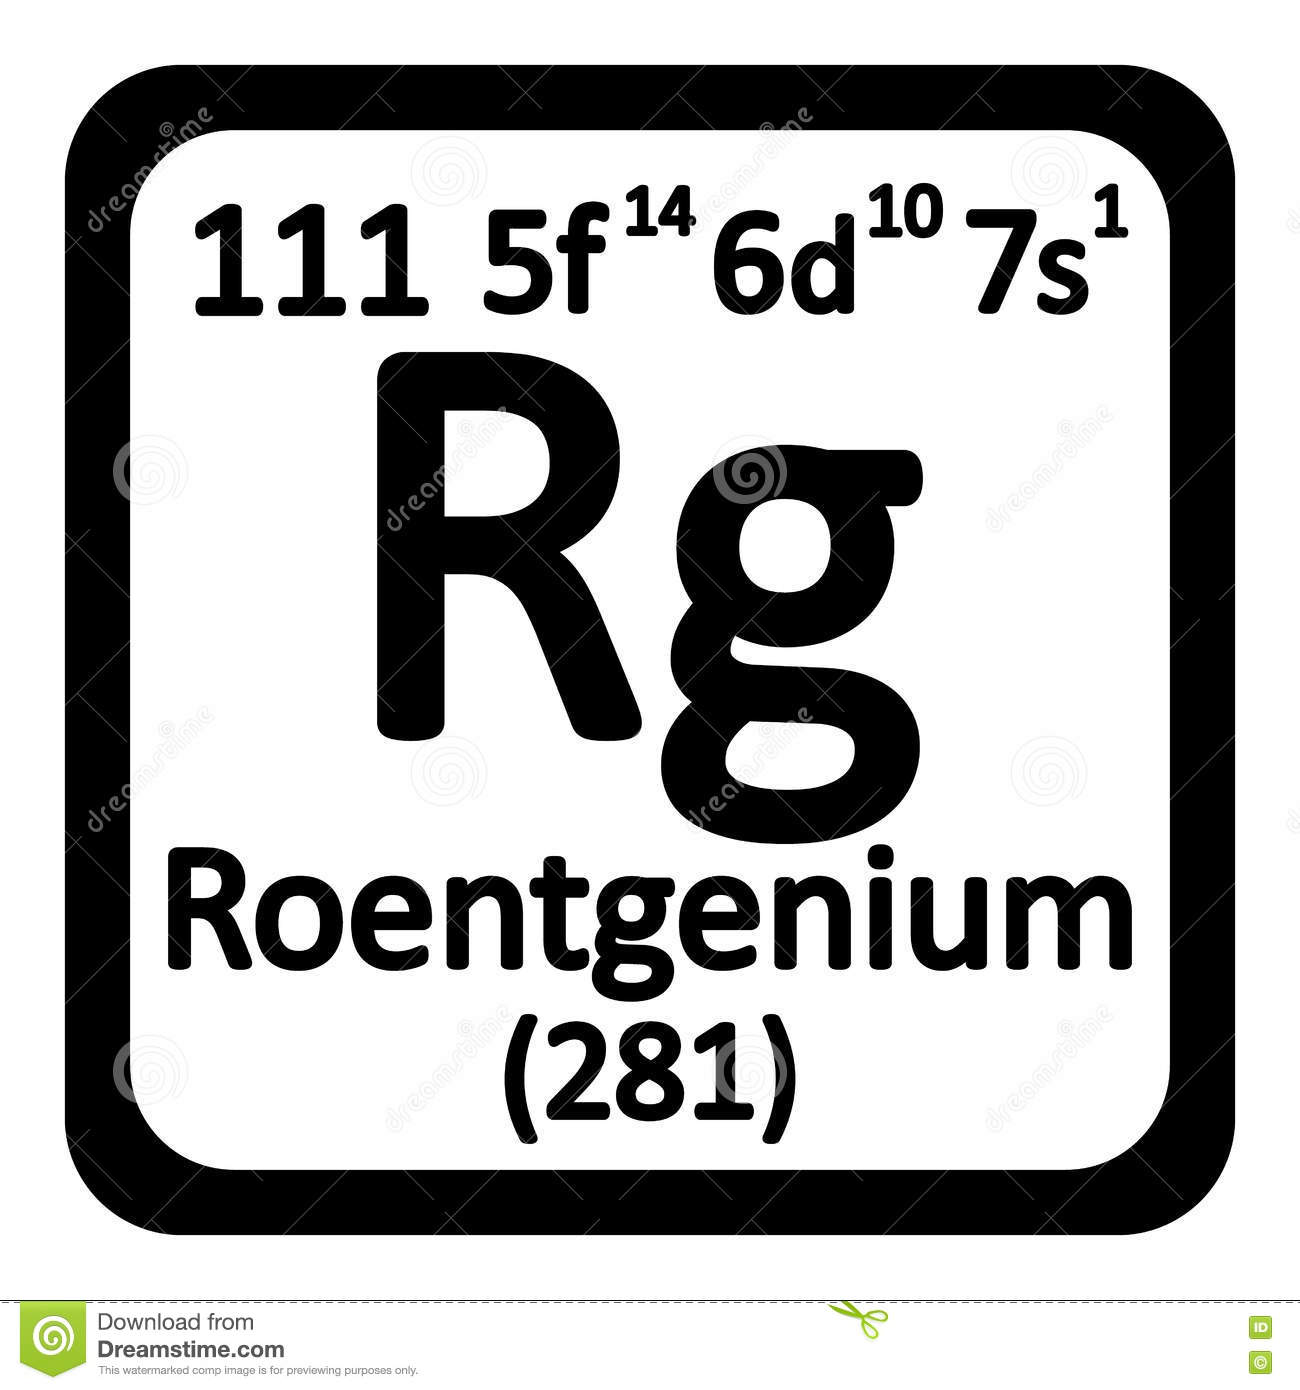 Modern periodic table free download choice image periodic table modern periodic table free download images periodic table images periodic table element roentgenium icon stock illustration gamestrikefo Image collections